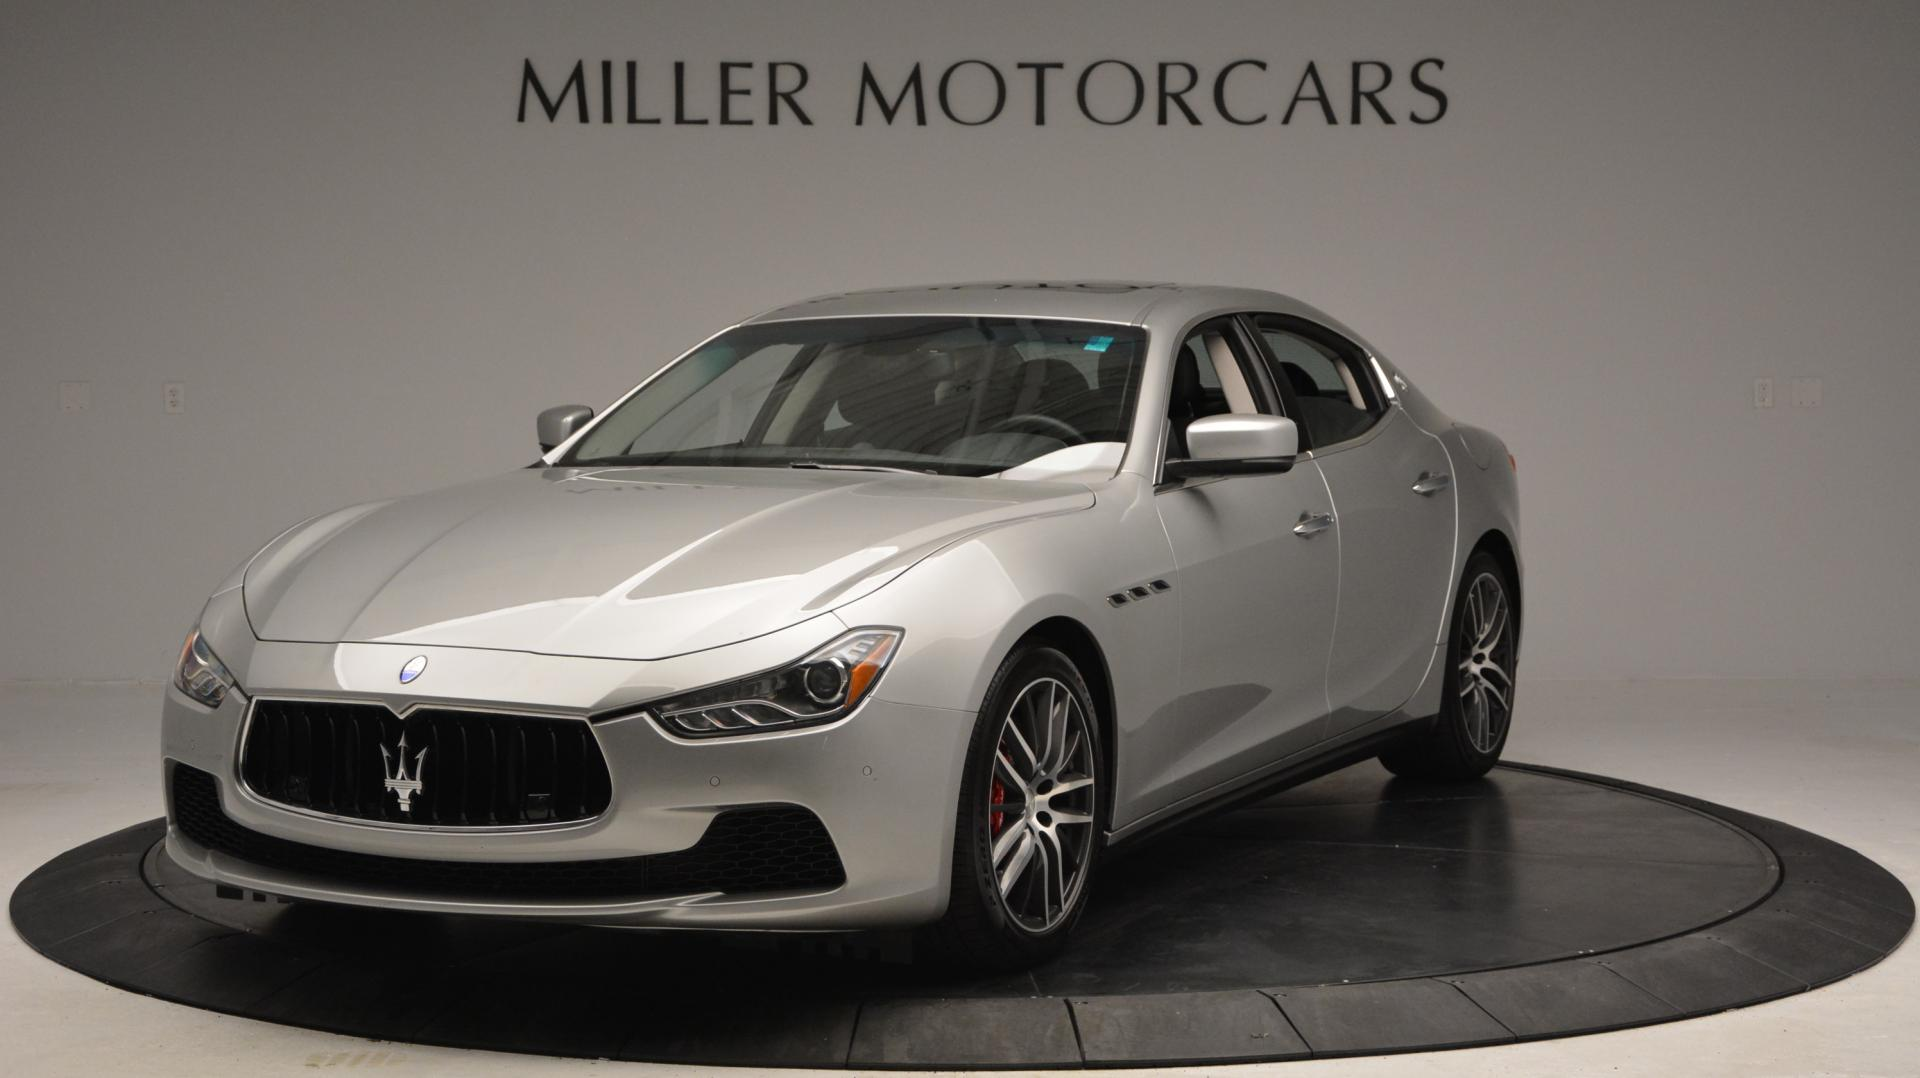 New 2016 Maserati Ghibli S Q4 for sale Sold at Pagani of Greenwich in Greenwich CT 06830 1